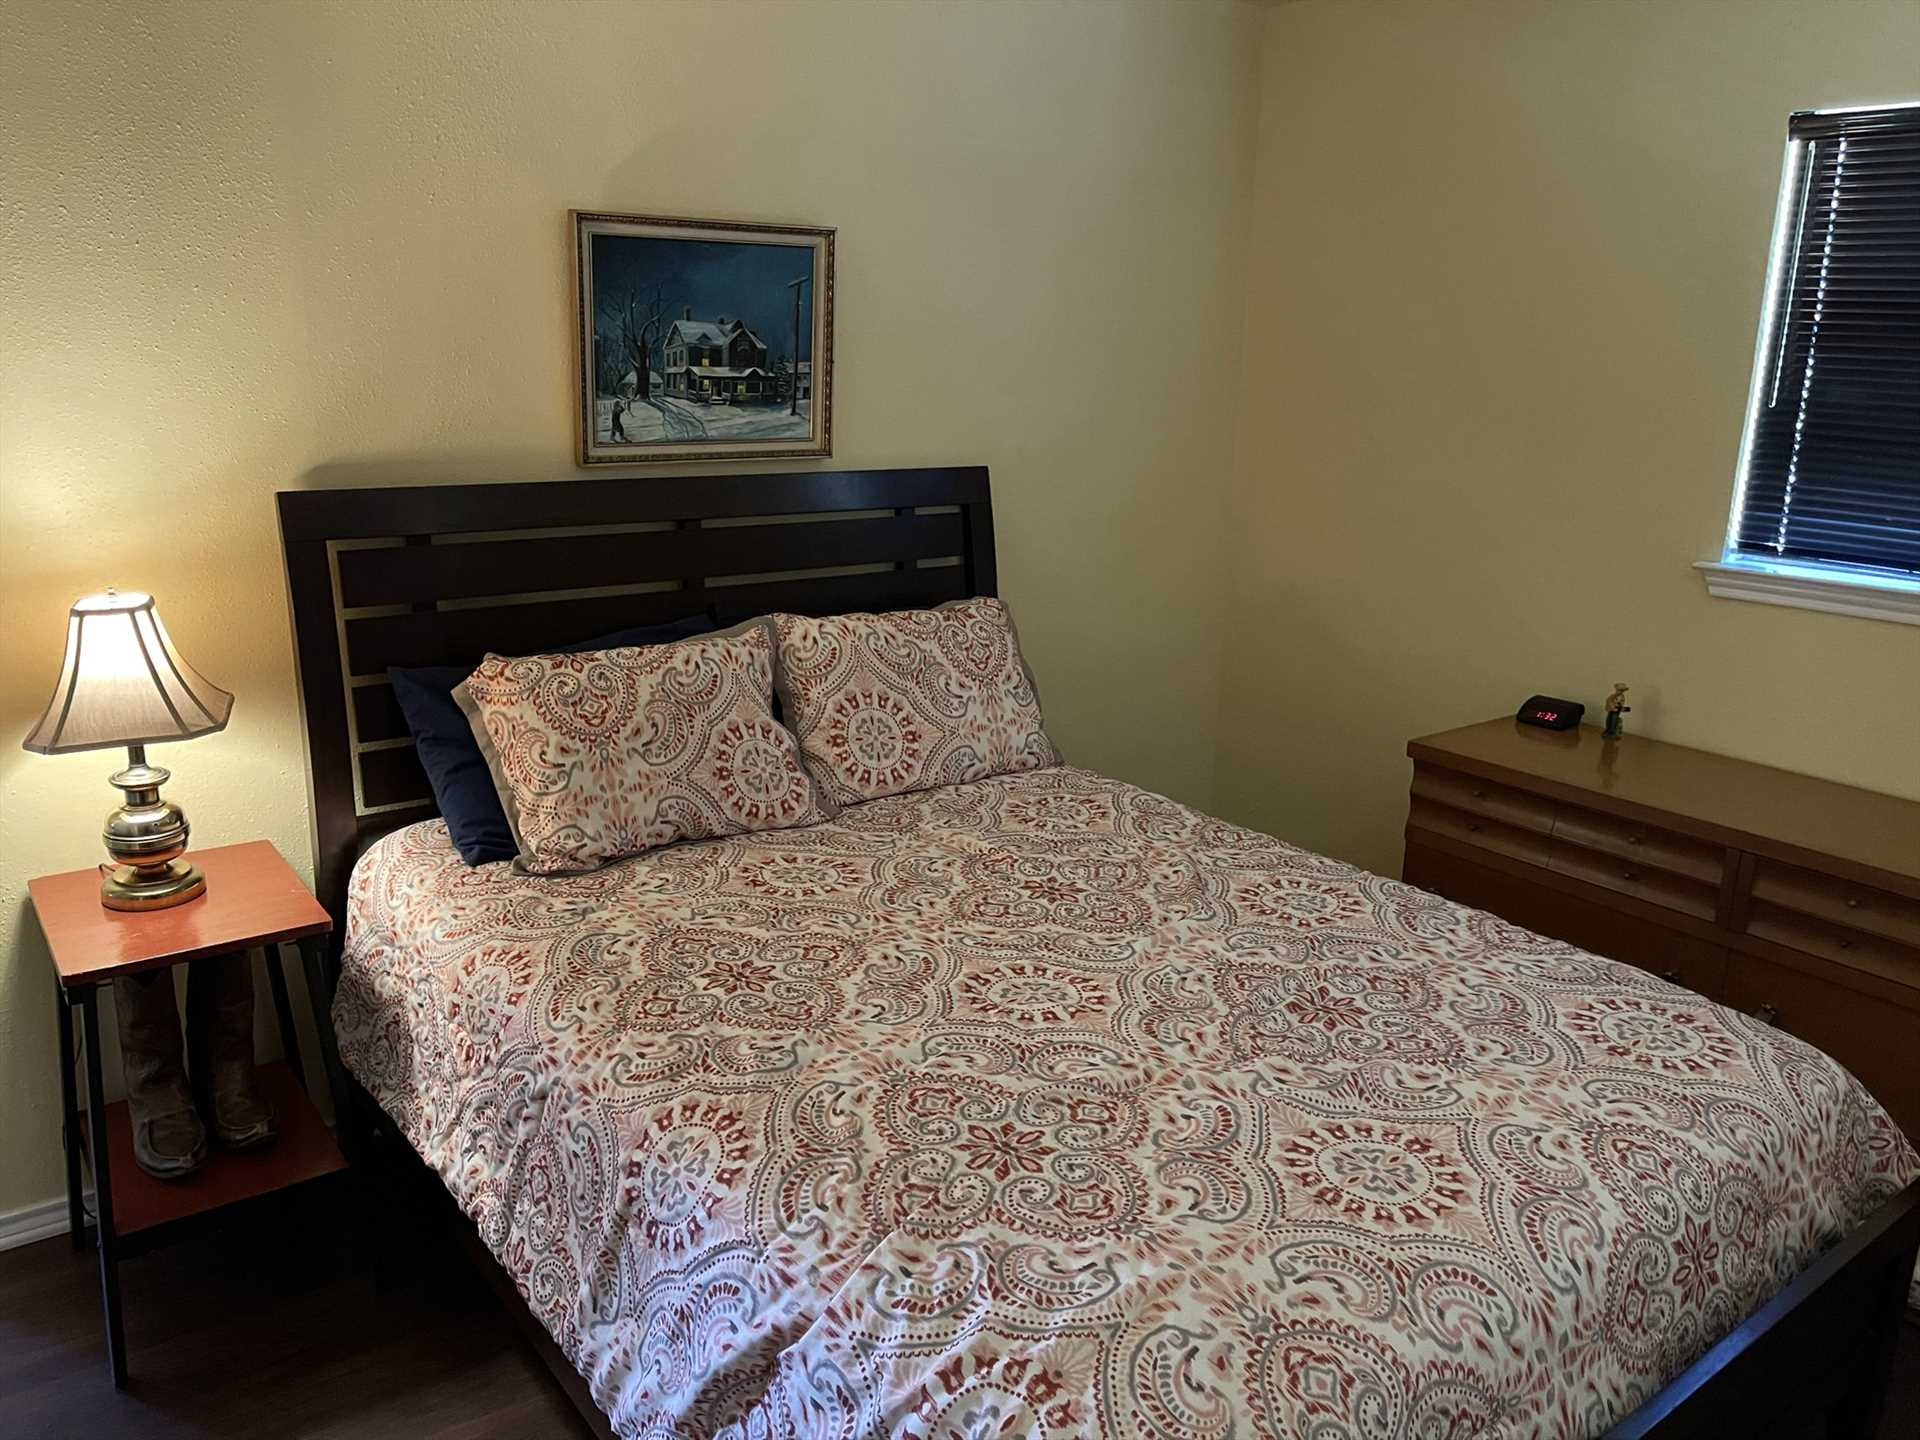 An enormous and comfy king-sized bed adorns the master bedroom, and clean bed and bath linens are provided throughout the home.